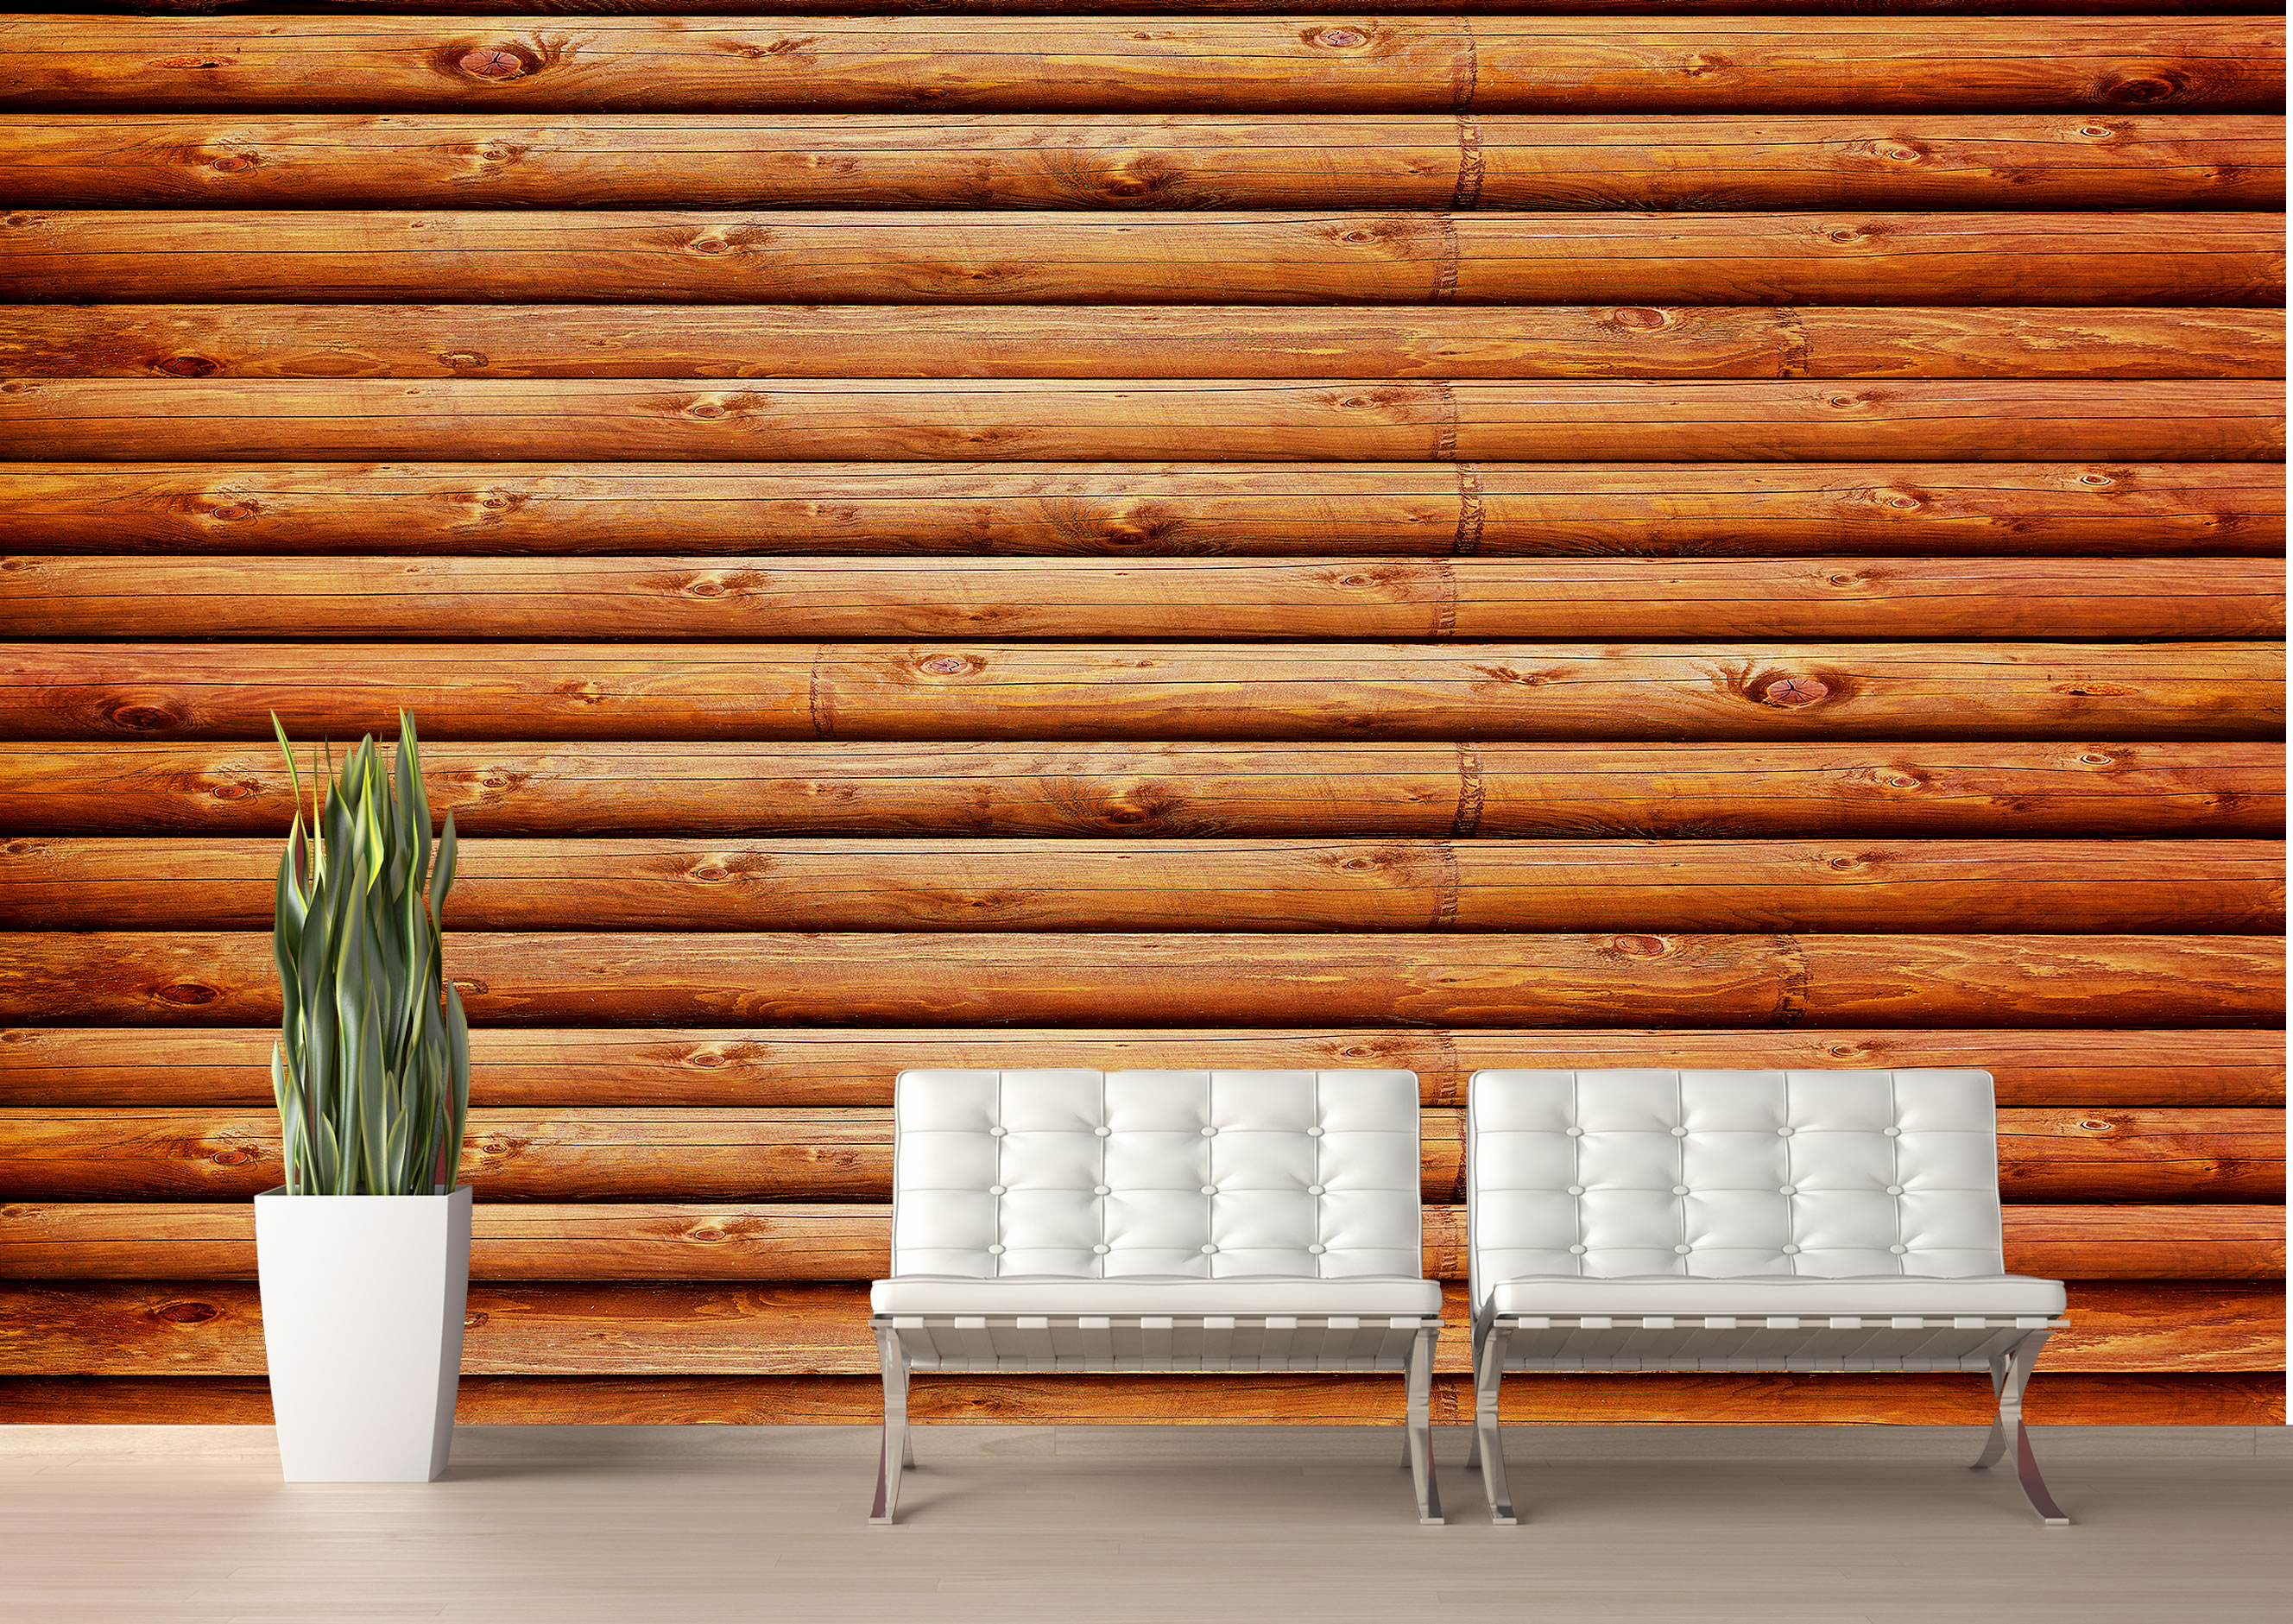 Turn Any Space Into A Rustic Lodge With This Highly Realistic Log Cabin Wall  Mural. Installs Instantly   Without Paste Or Tools!